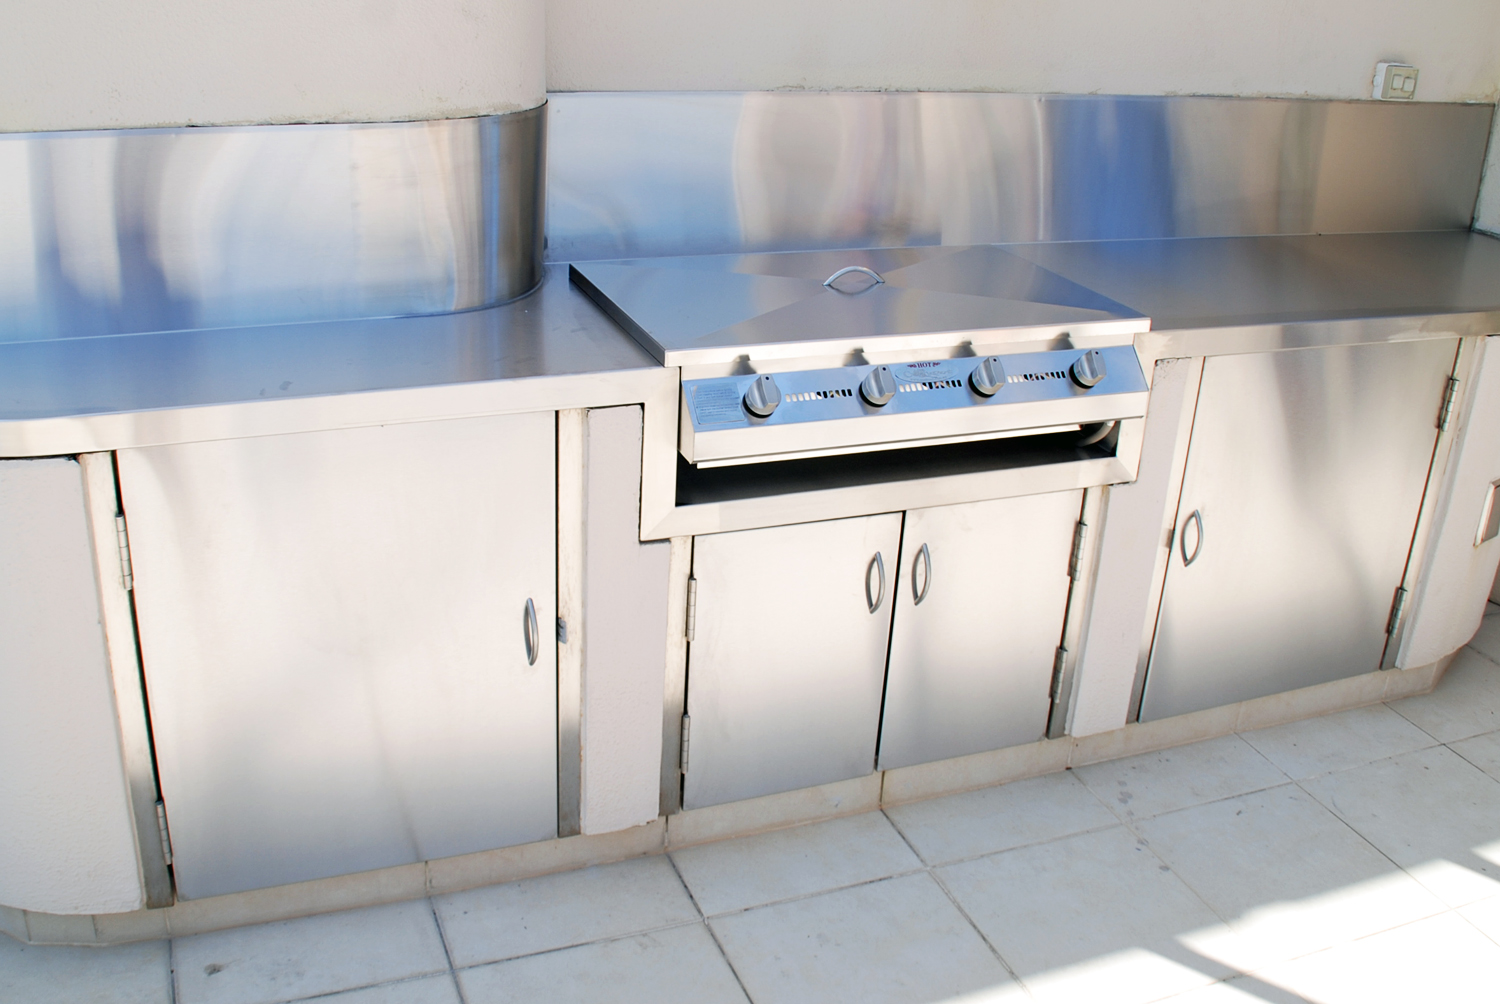 Residential stainless outdoor kitchen, benches and bbq